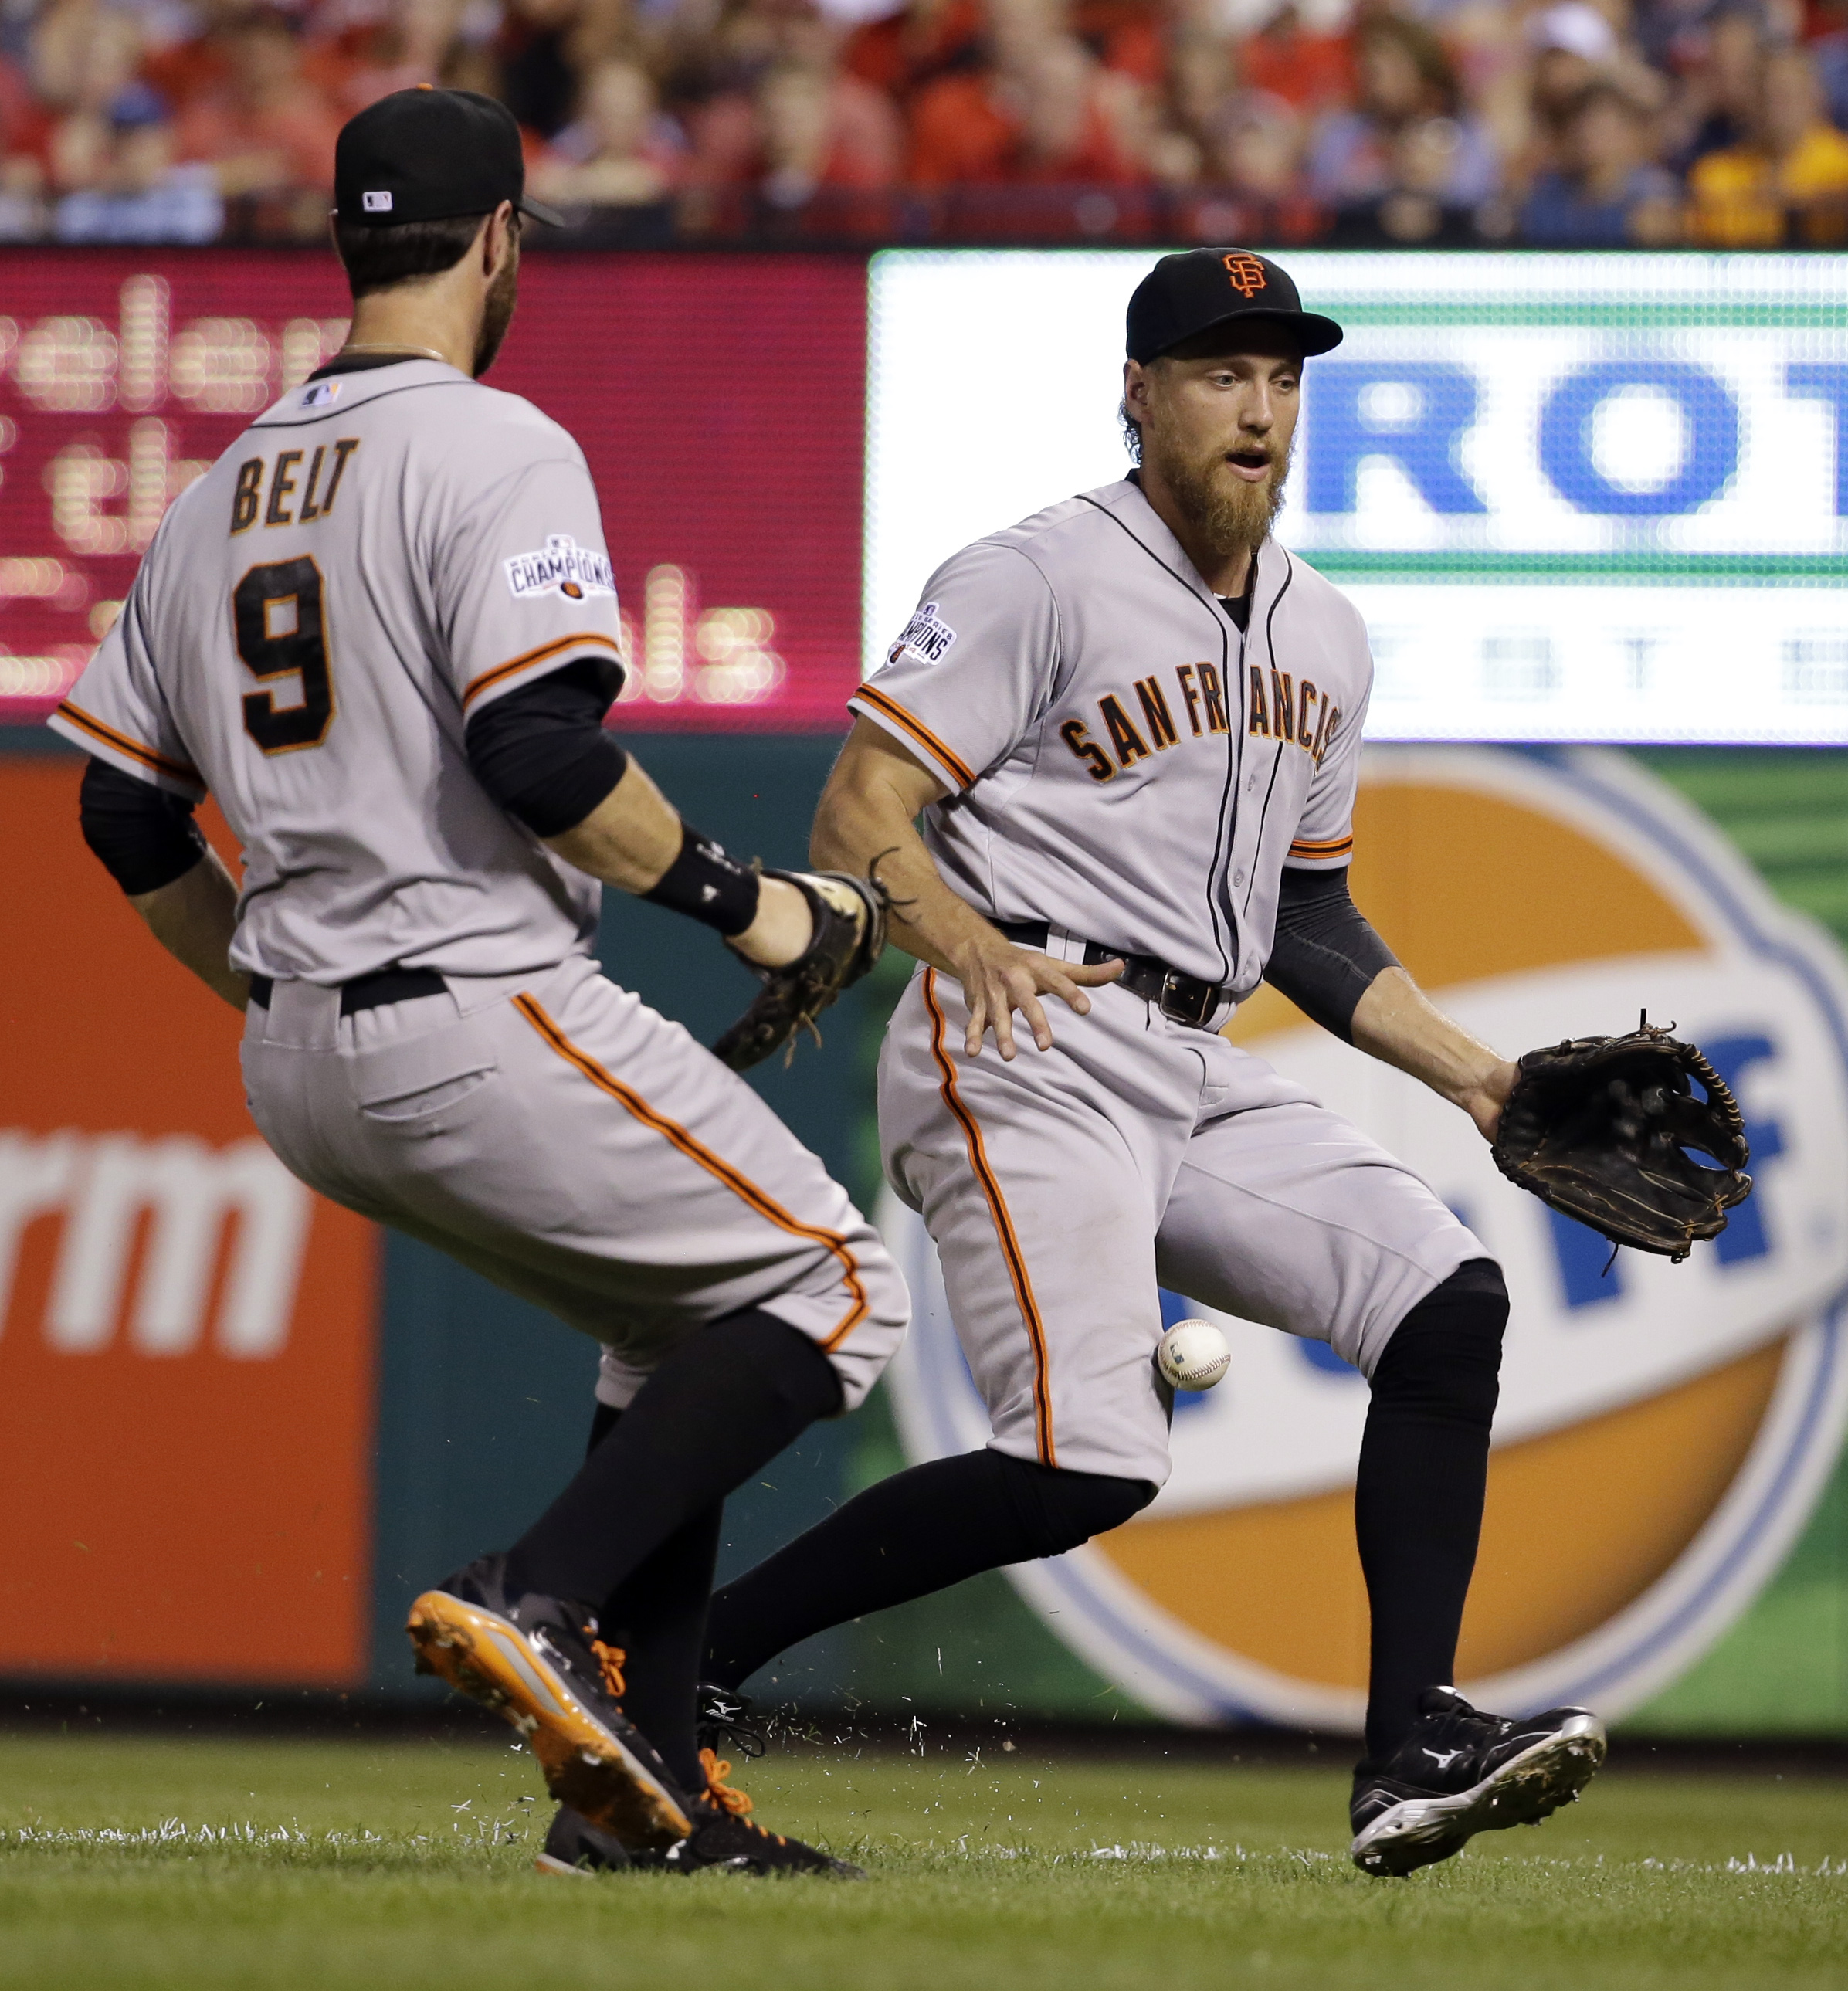 San Francisco Giants right fielder Hunter Pence, right, and first baseman Brandon Belt can't reach a foul ball hit by St. Louis Cardinals' Michael Wacha during the third inning of a baseball game Monday, Aug. 17, 2015, in St. Louis. (AP Photo/Jeff Roberso